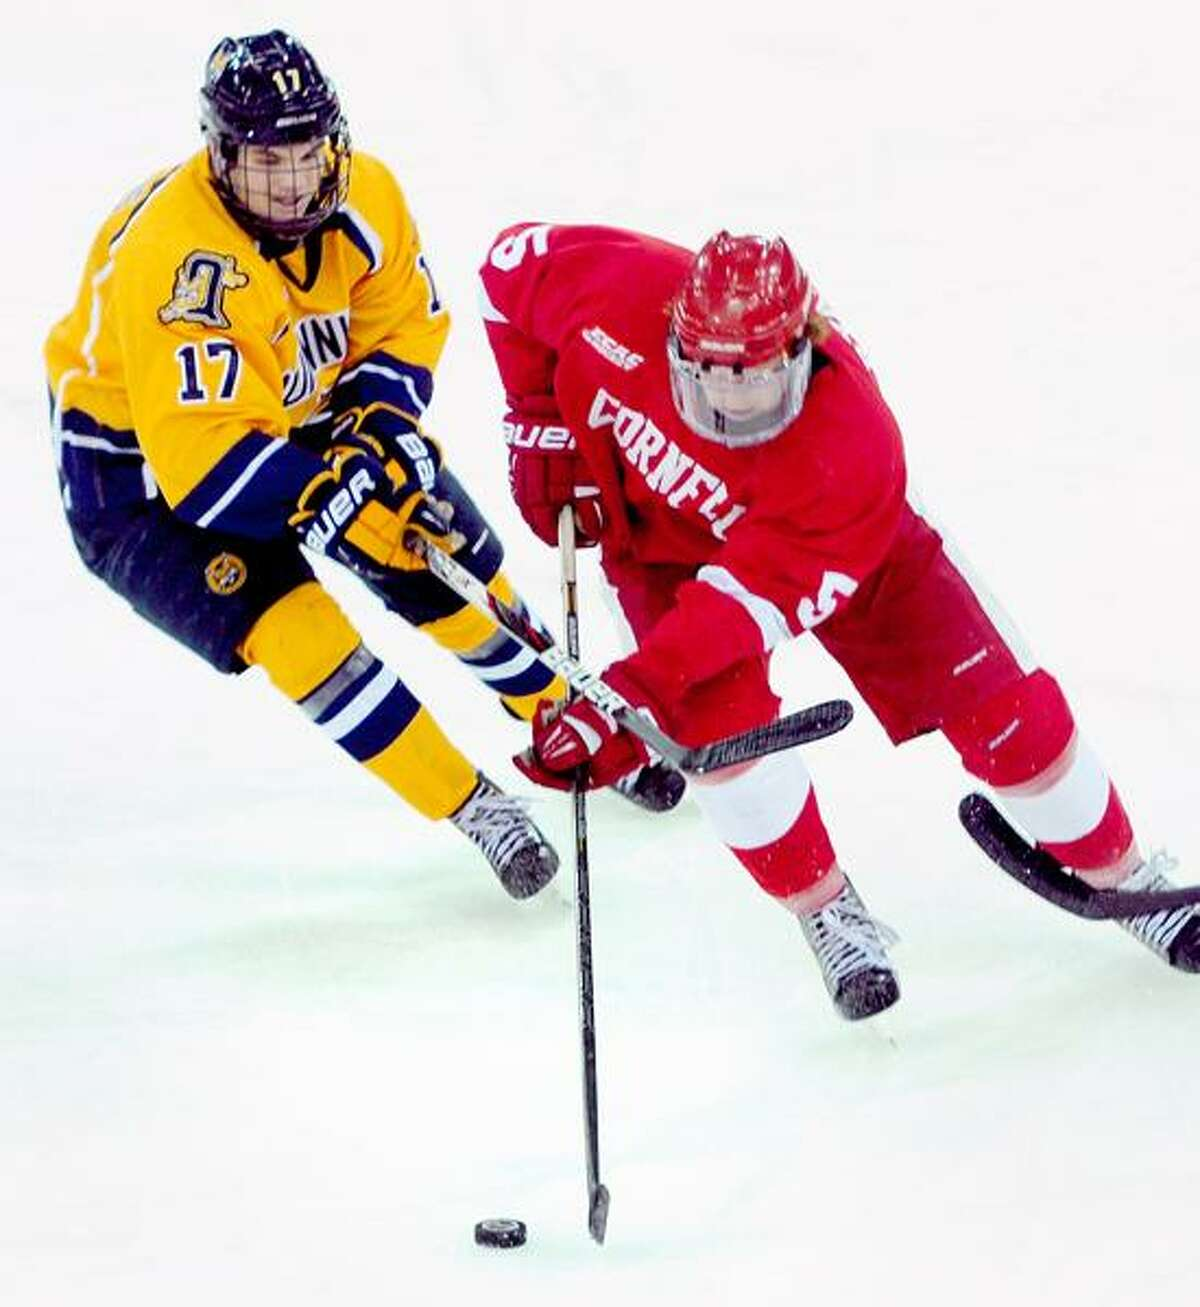 Jeremy Langlois (left) of Quinnipiac and Joakim Ryan (right) of Cornell fight for the puck in the second period during a ECAC quarterfinal contest on Friday. Arnold Gold/New Haven Register